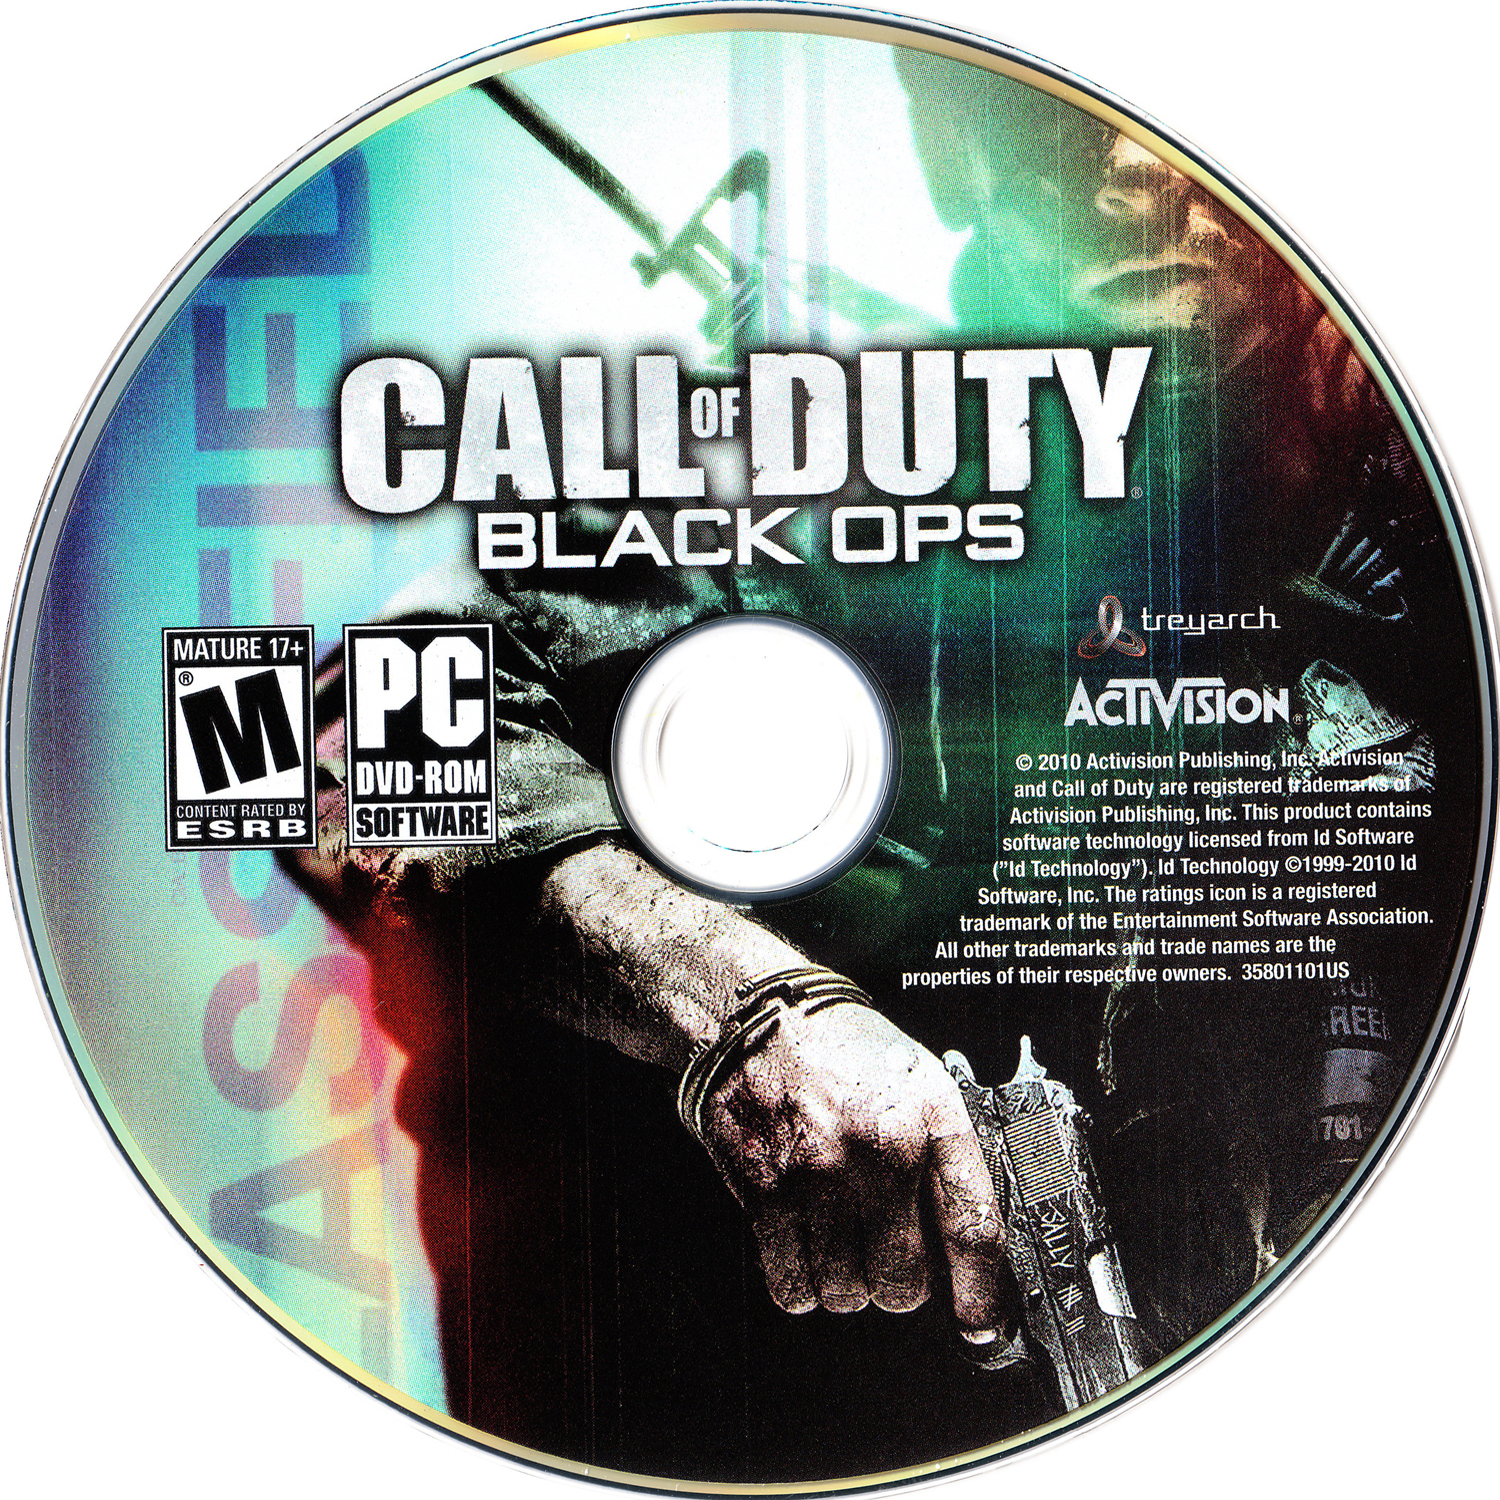 Call of Duty Black Ops 22010.